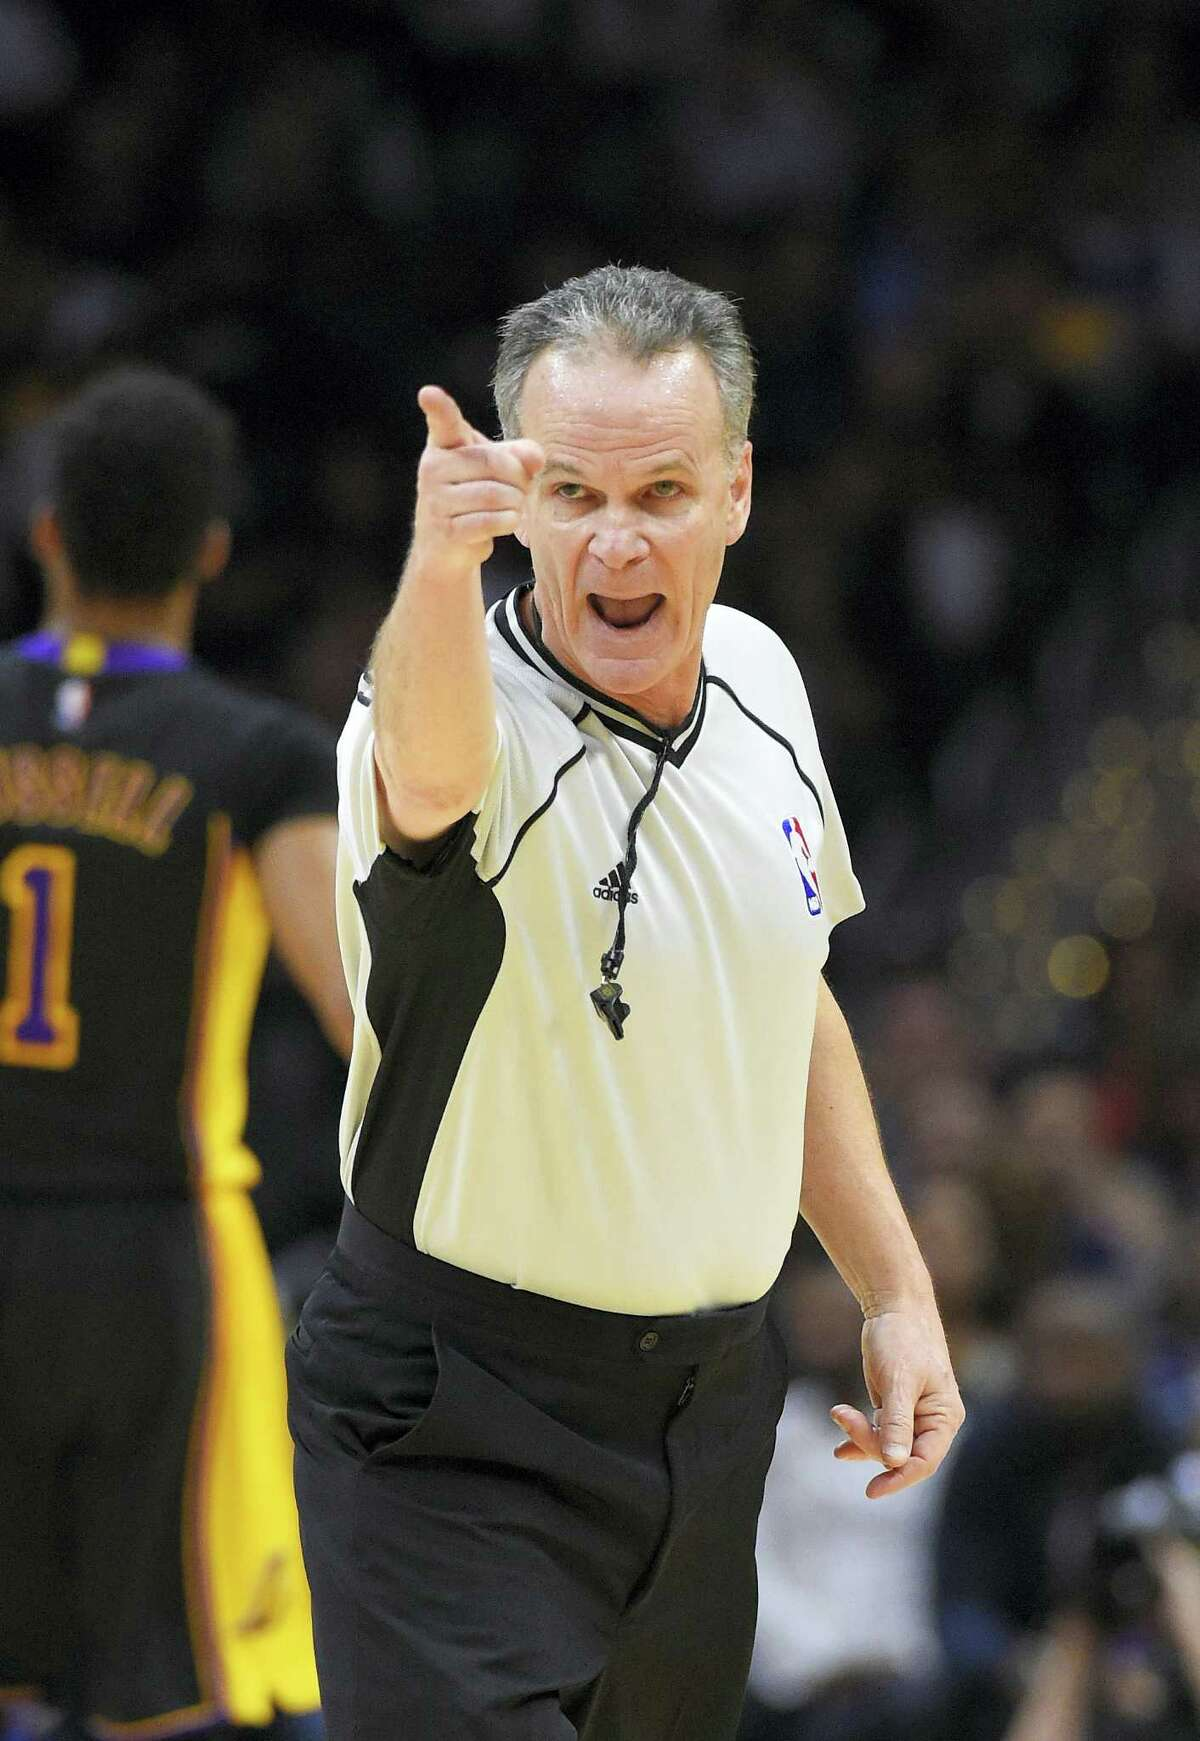 Referee Mike Callahan gestures during the first half of an NBA basketball game between the Los Angeles Clippers and the Los Angeles Lakers Jan. 29 in Los Angeles.